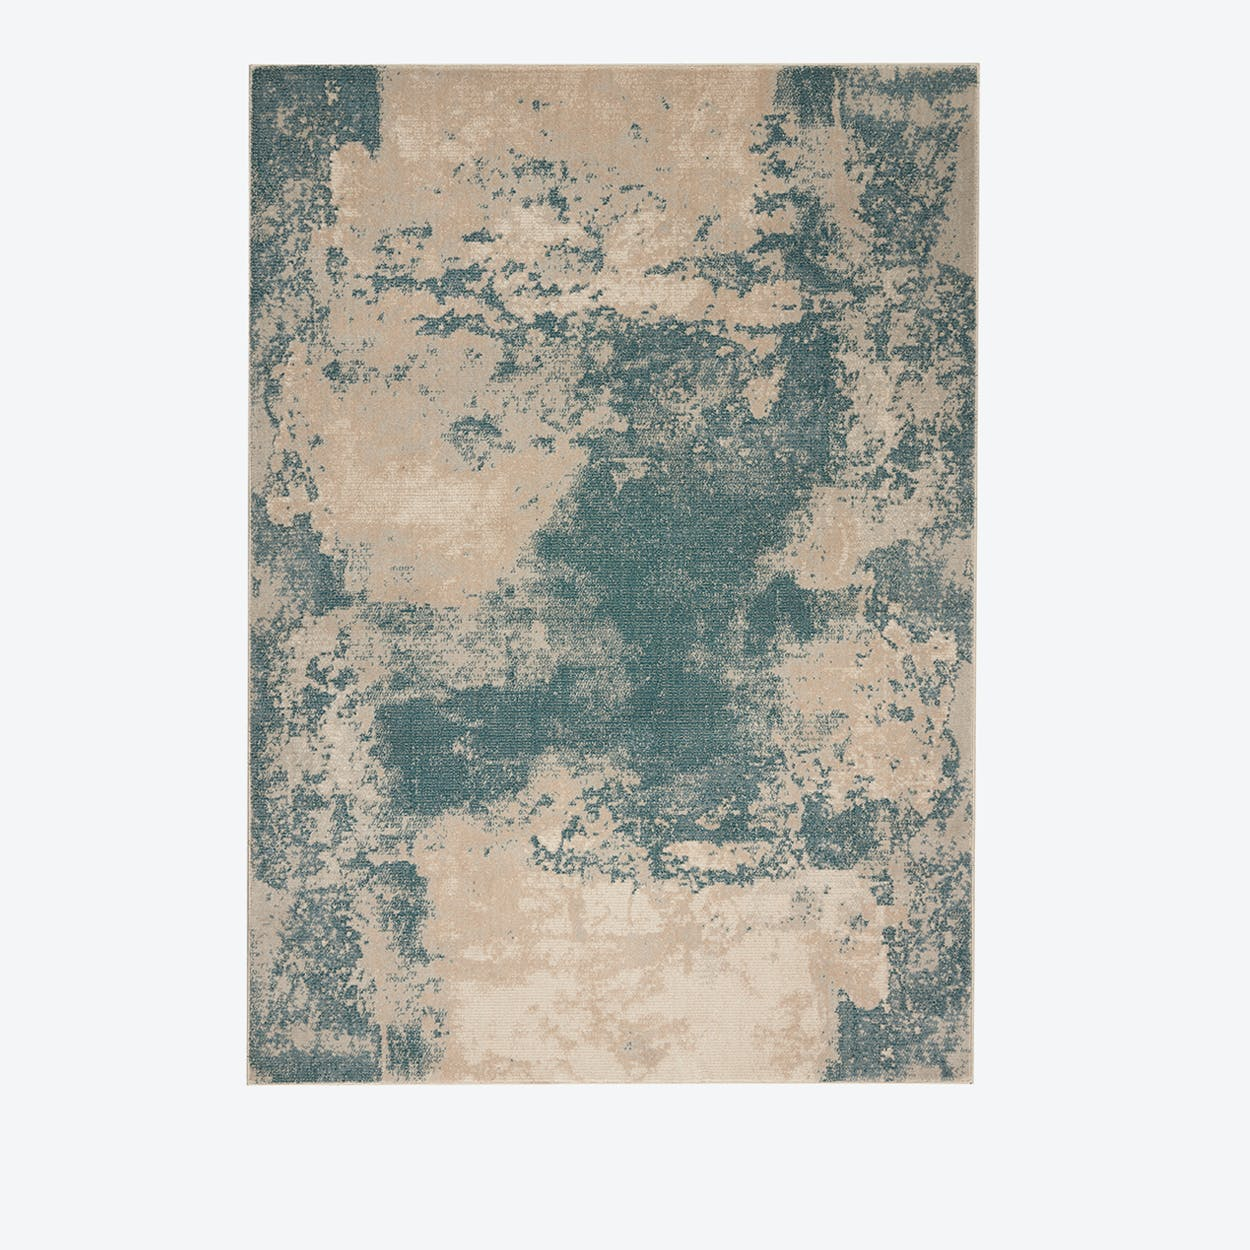 MAXELL Rug in Ivory & Teal